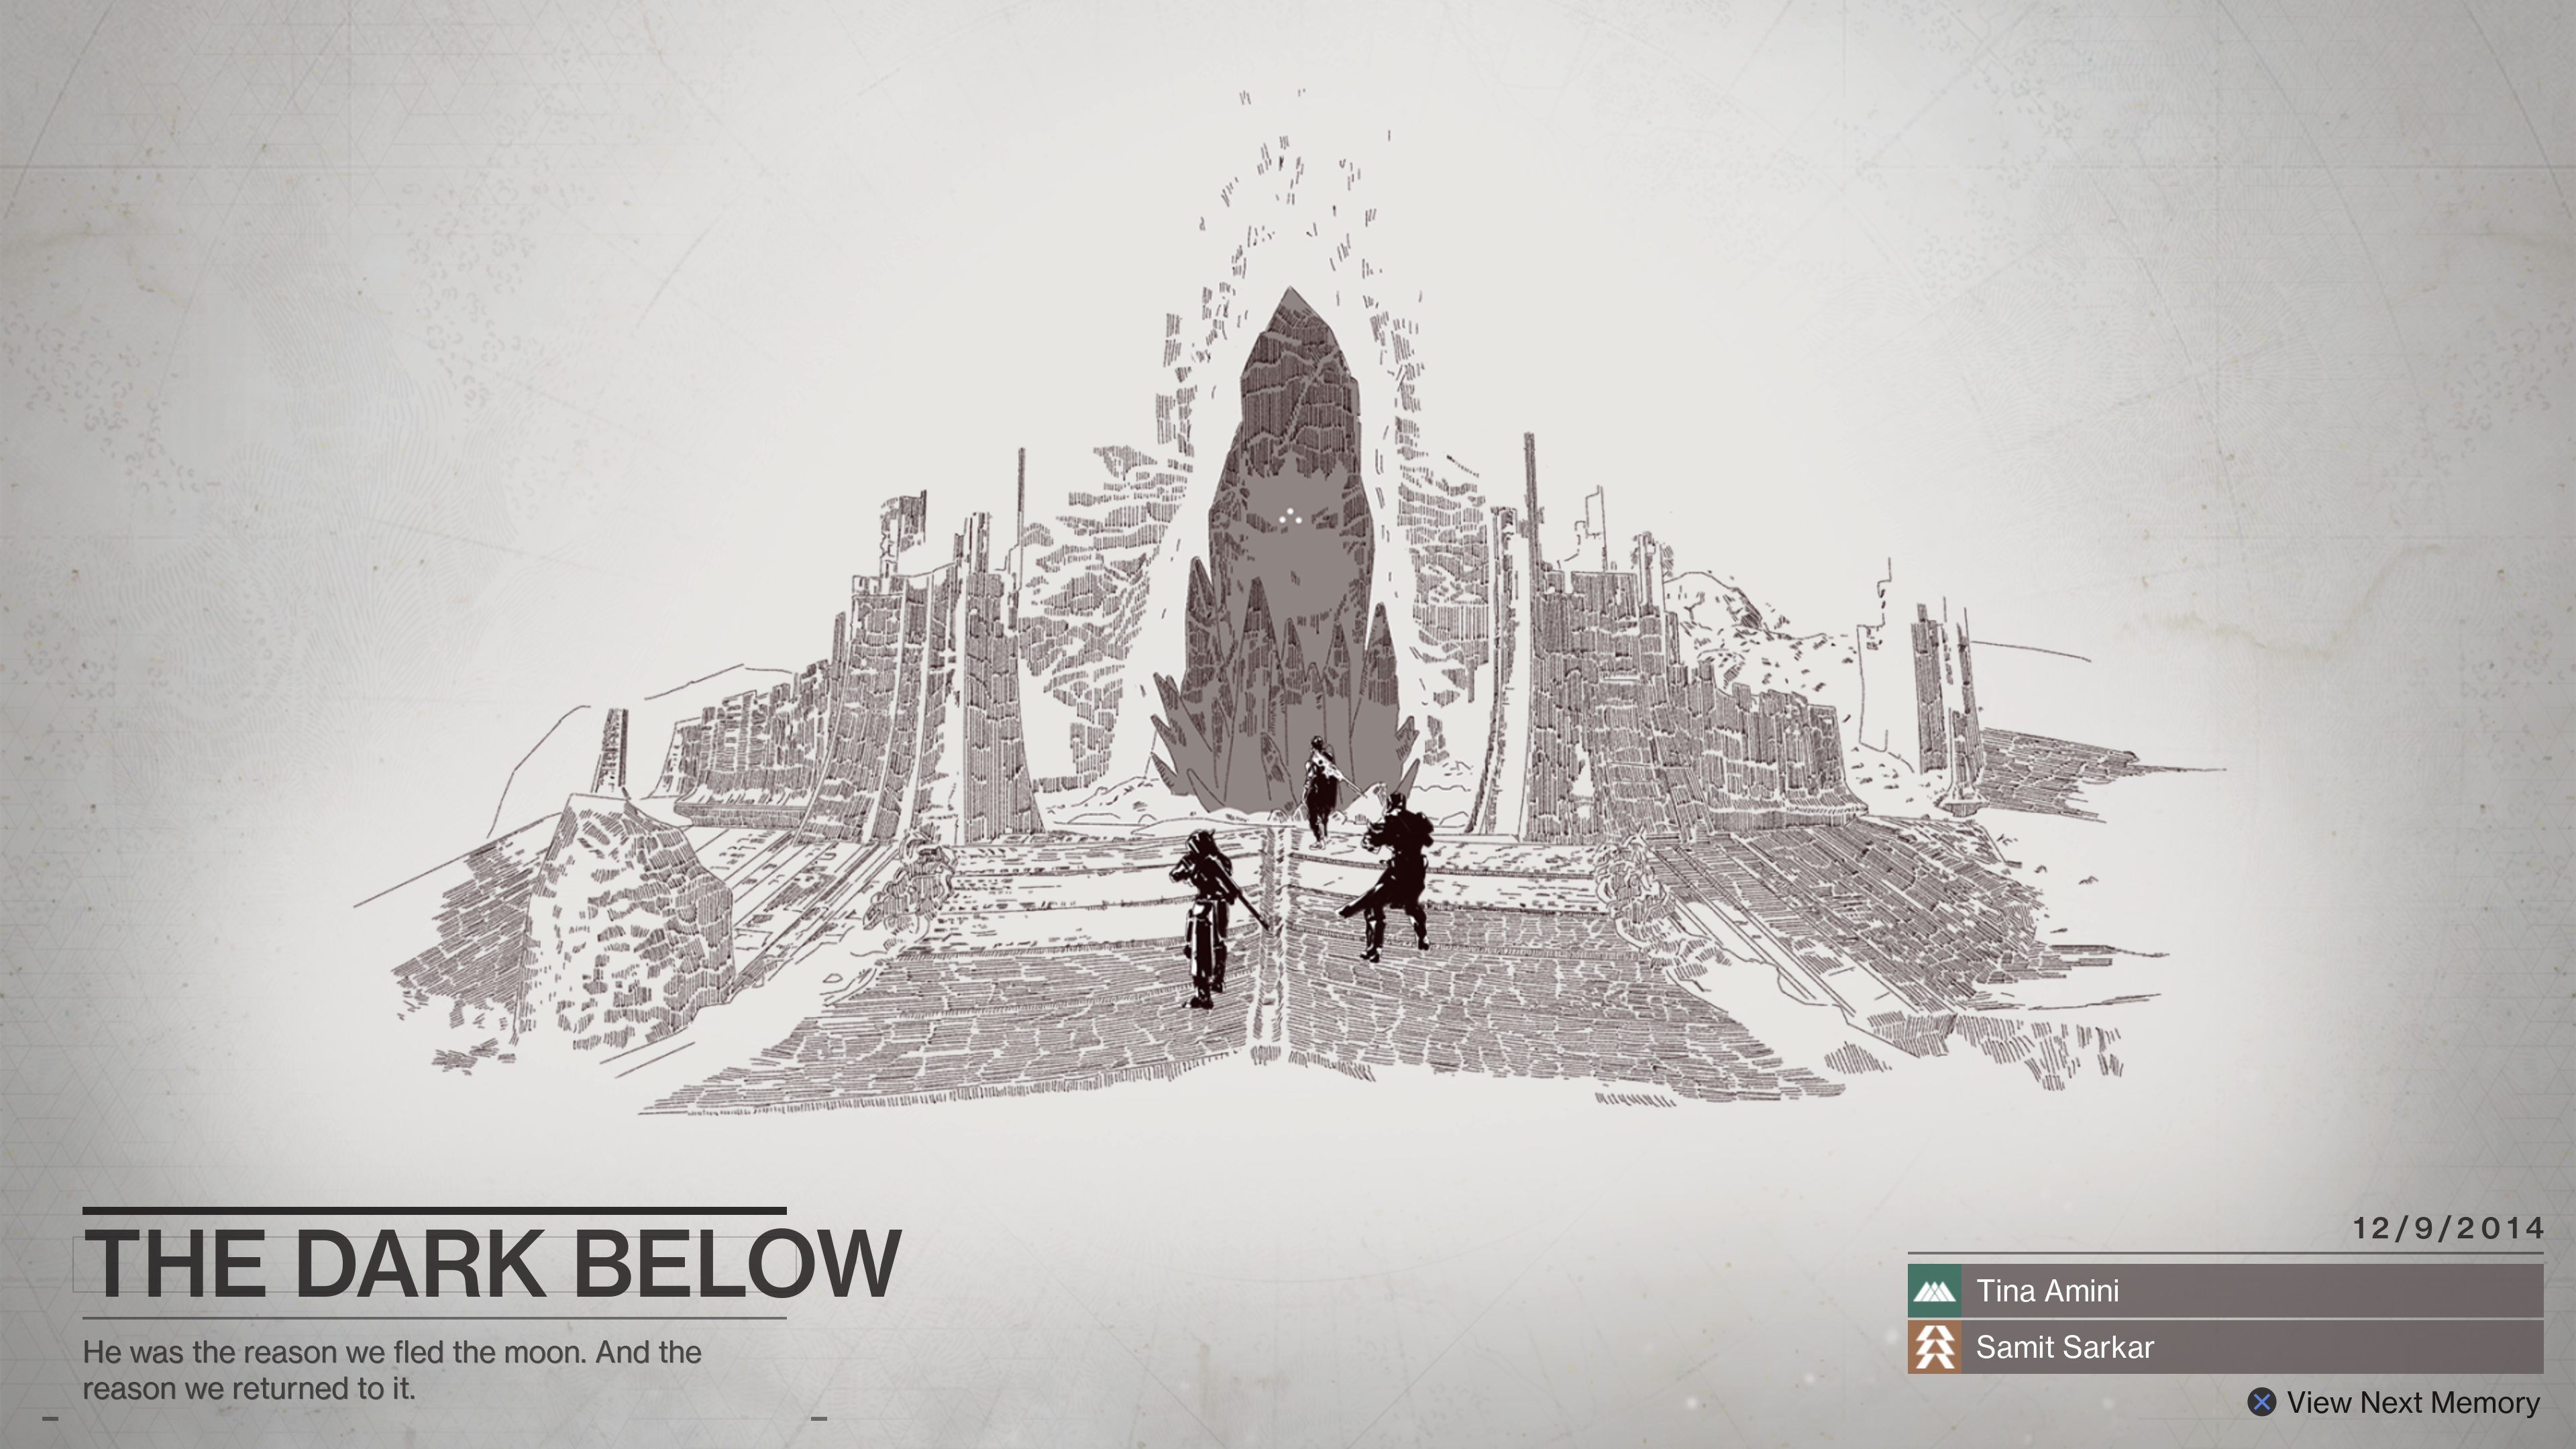 Destiny 2 begins with a touching tribute to returning